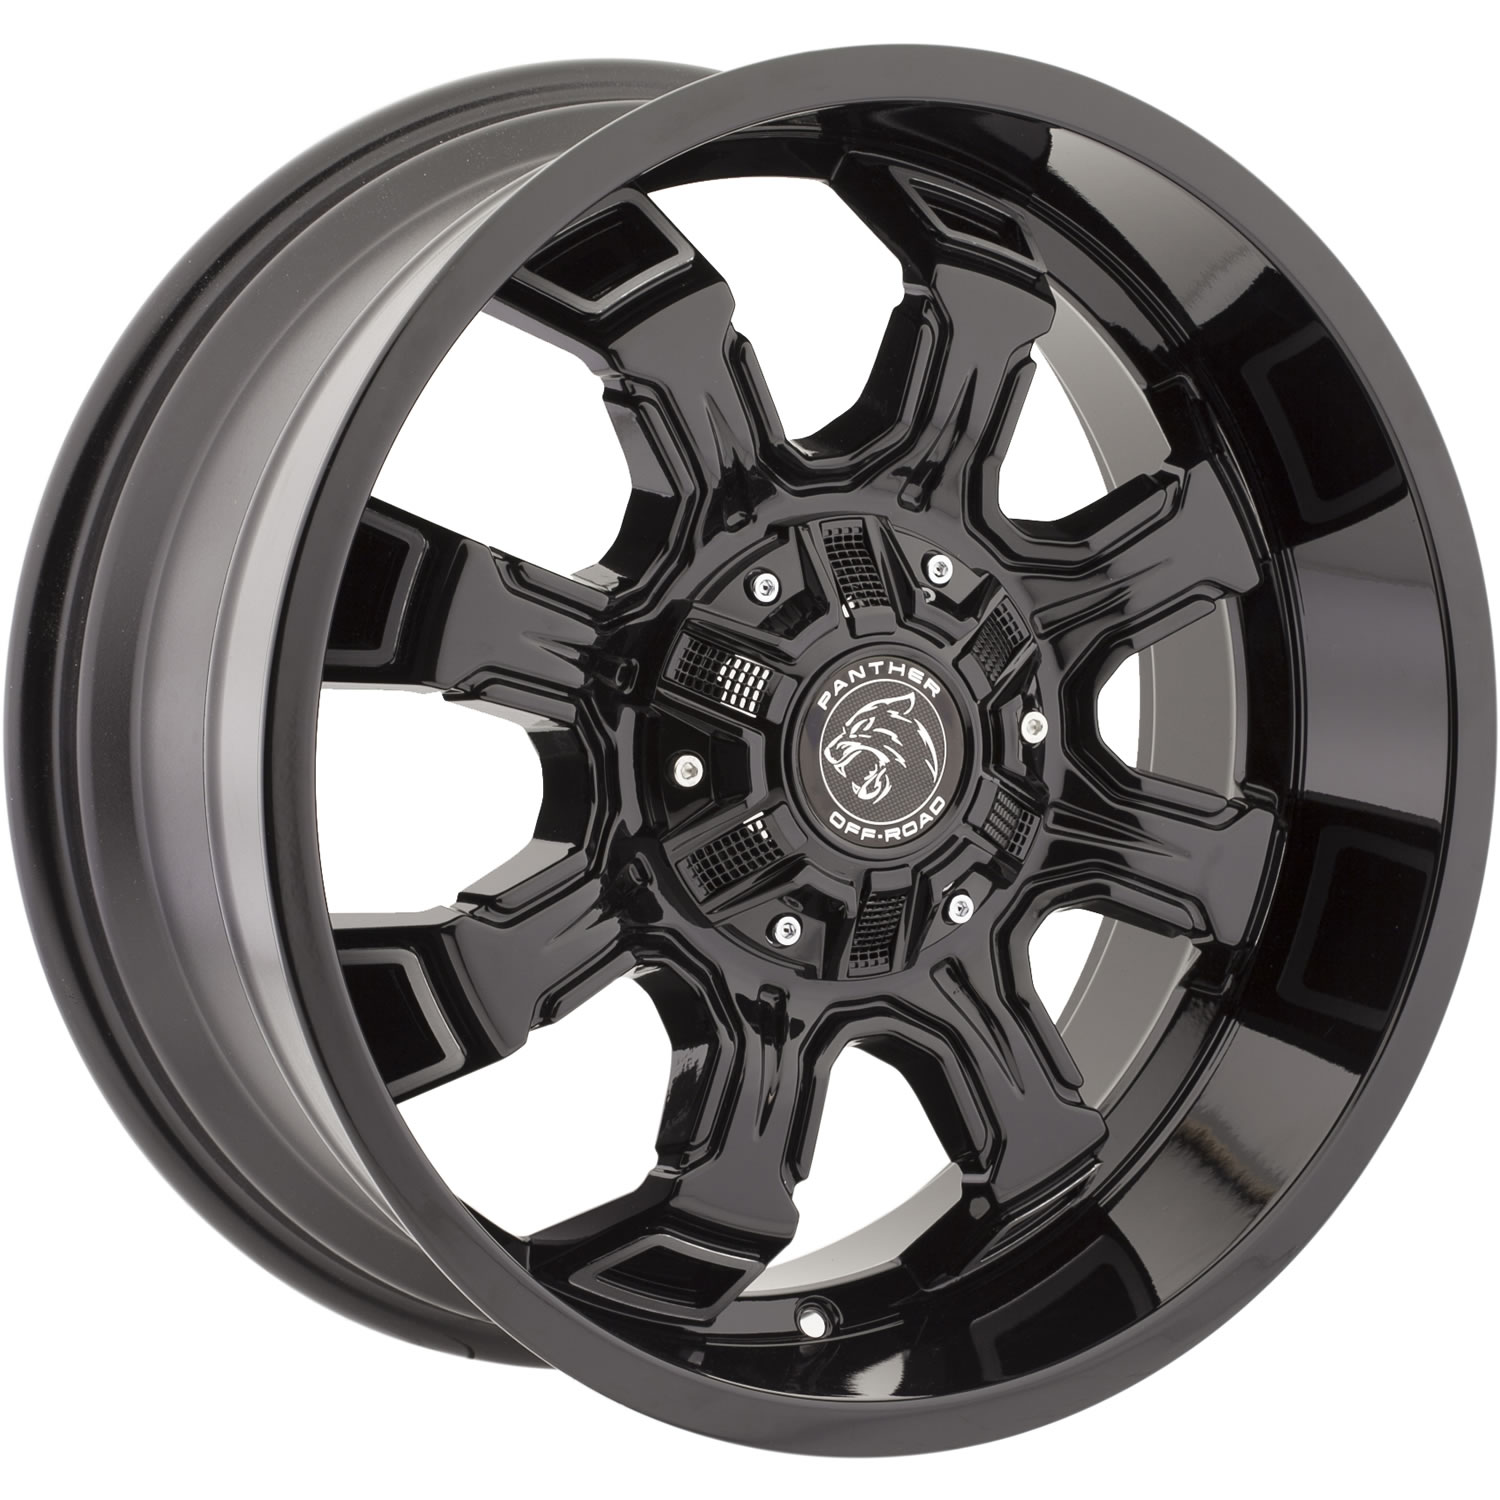 Panther Offroad 579 20x9 12 Custom Wheels